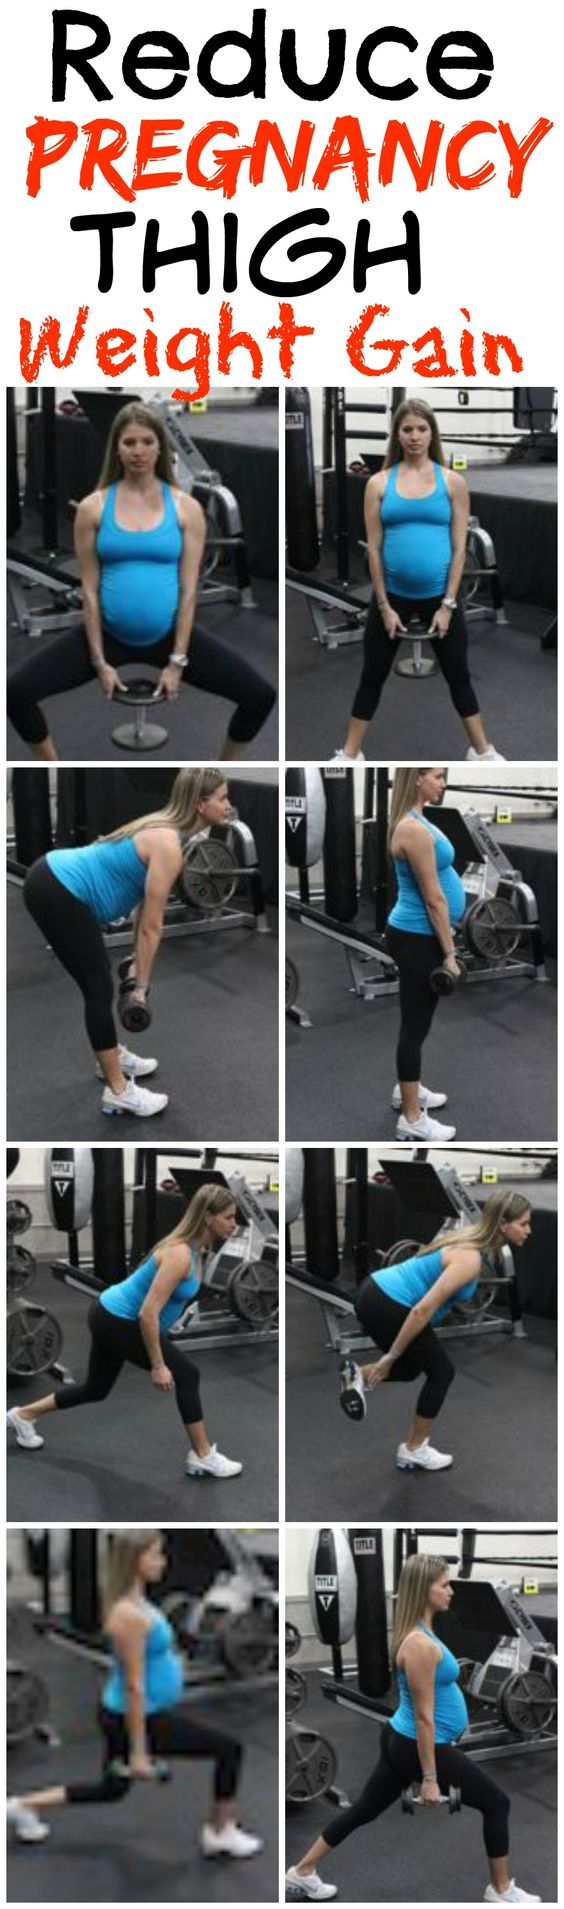 Reduce Thigh Weight Gain With This Pregnancy Workout ...